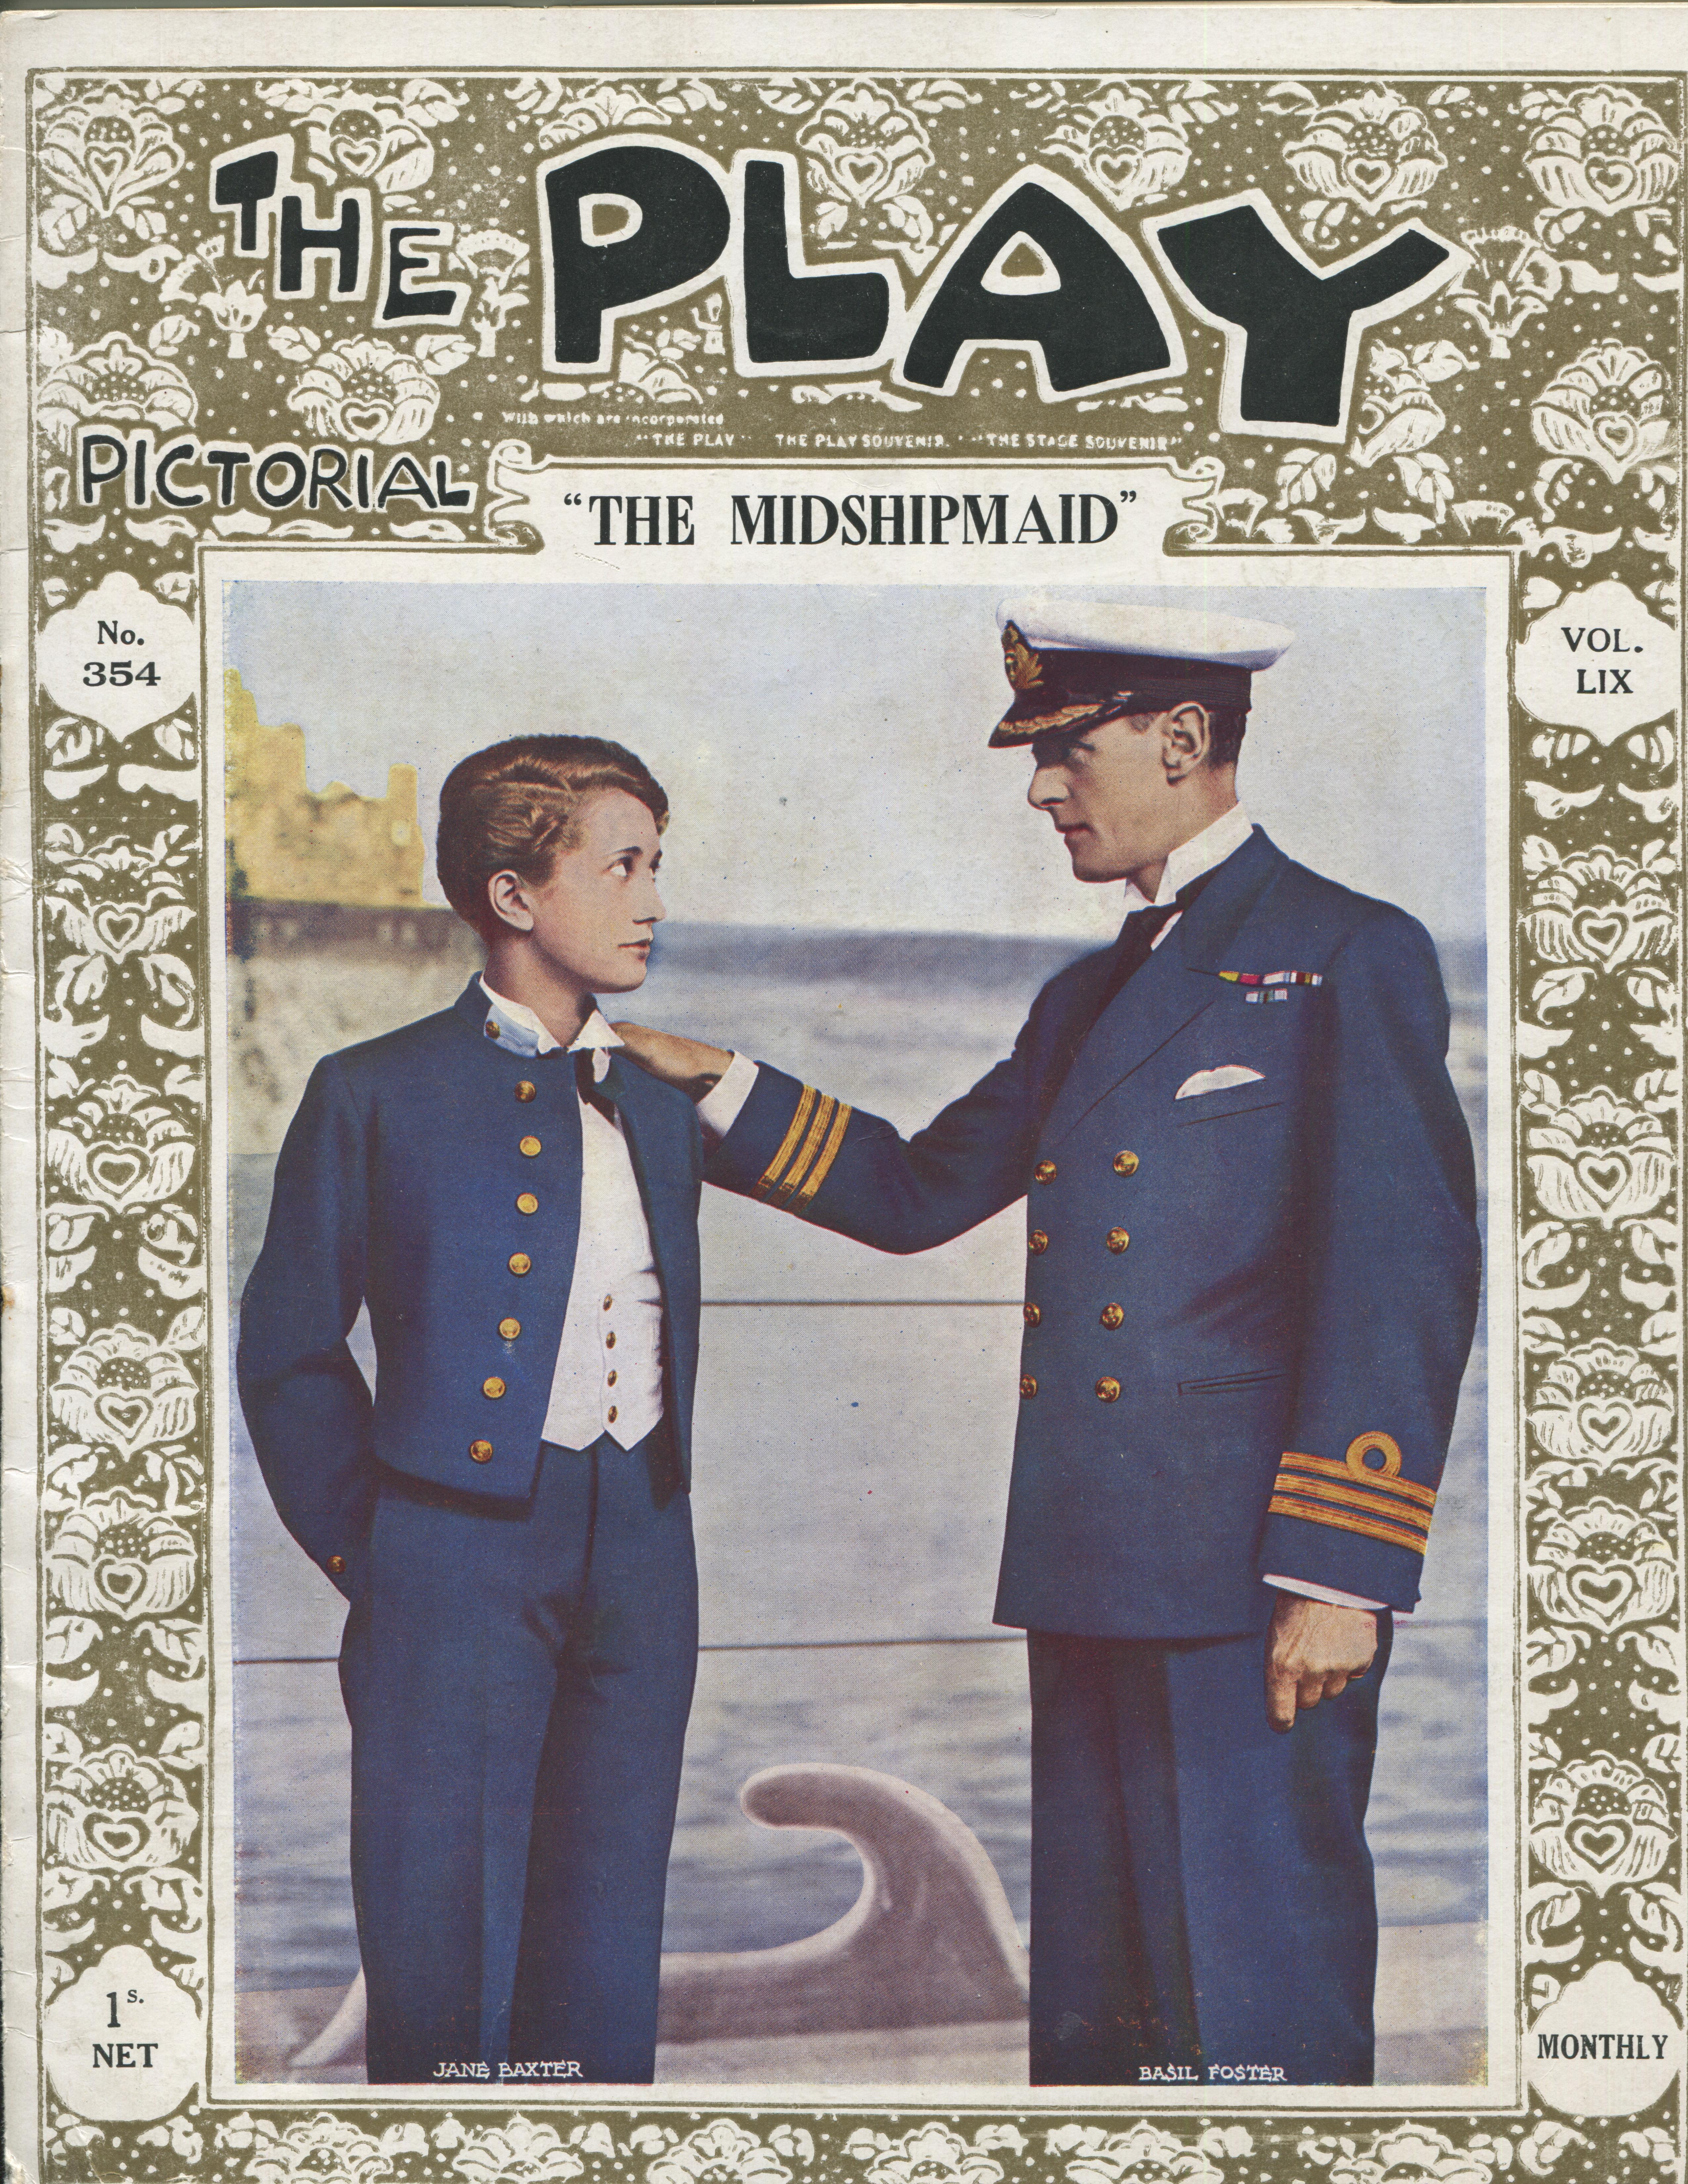 The Play Pictorial - No 354 - Vol IX - September 1931 - 'The Midshipmaid' - vg